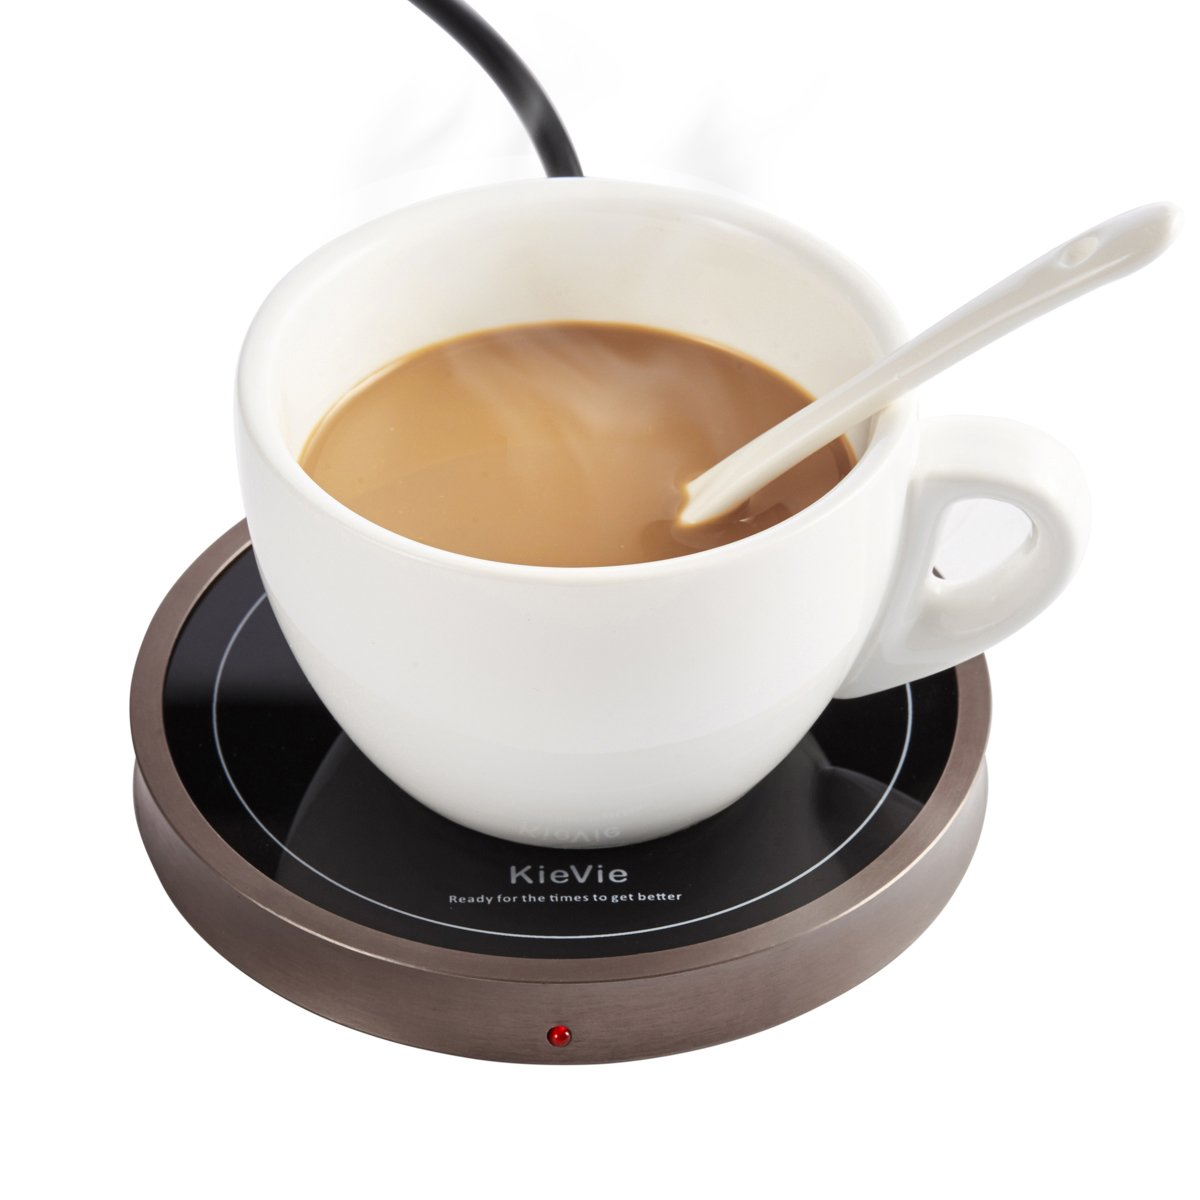 KieVie Electric Coffee Mug Warmer for Home/Office Use, Pyroceram Plate and Metal Shell, Waterproof Mug Warmer For Warming Beverages, such as Coffee, Milk, Tea, Cocoa, Small Food, Golden Brown